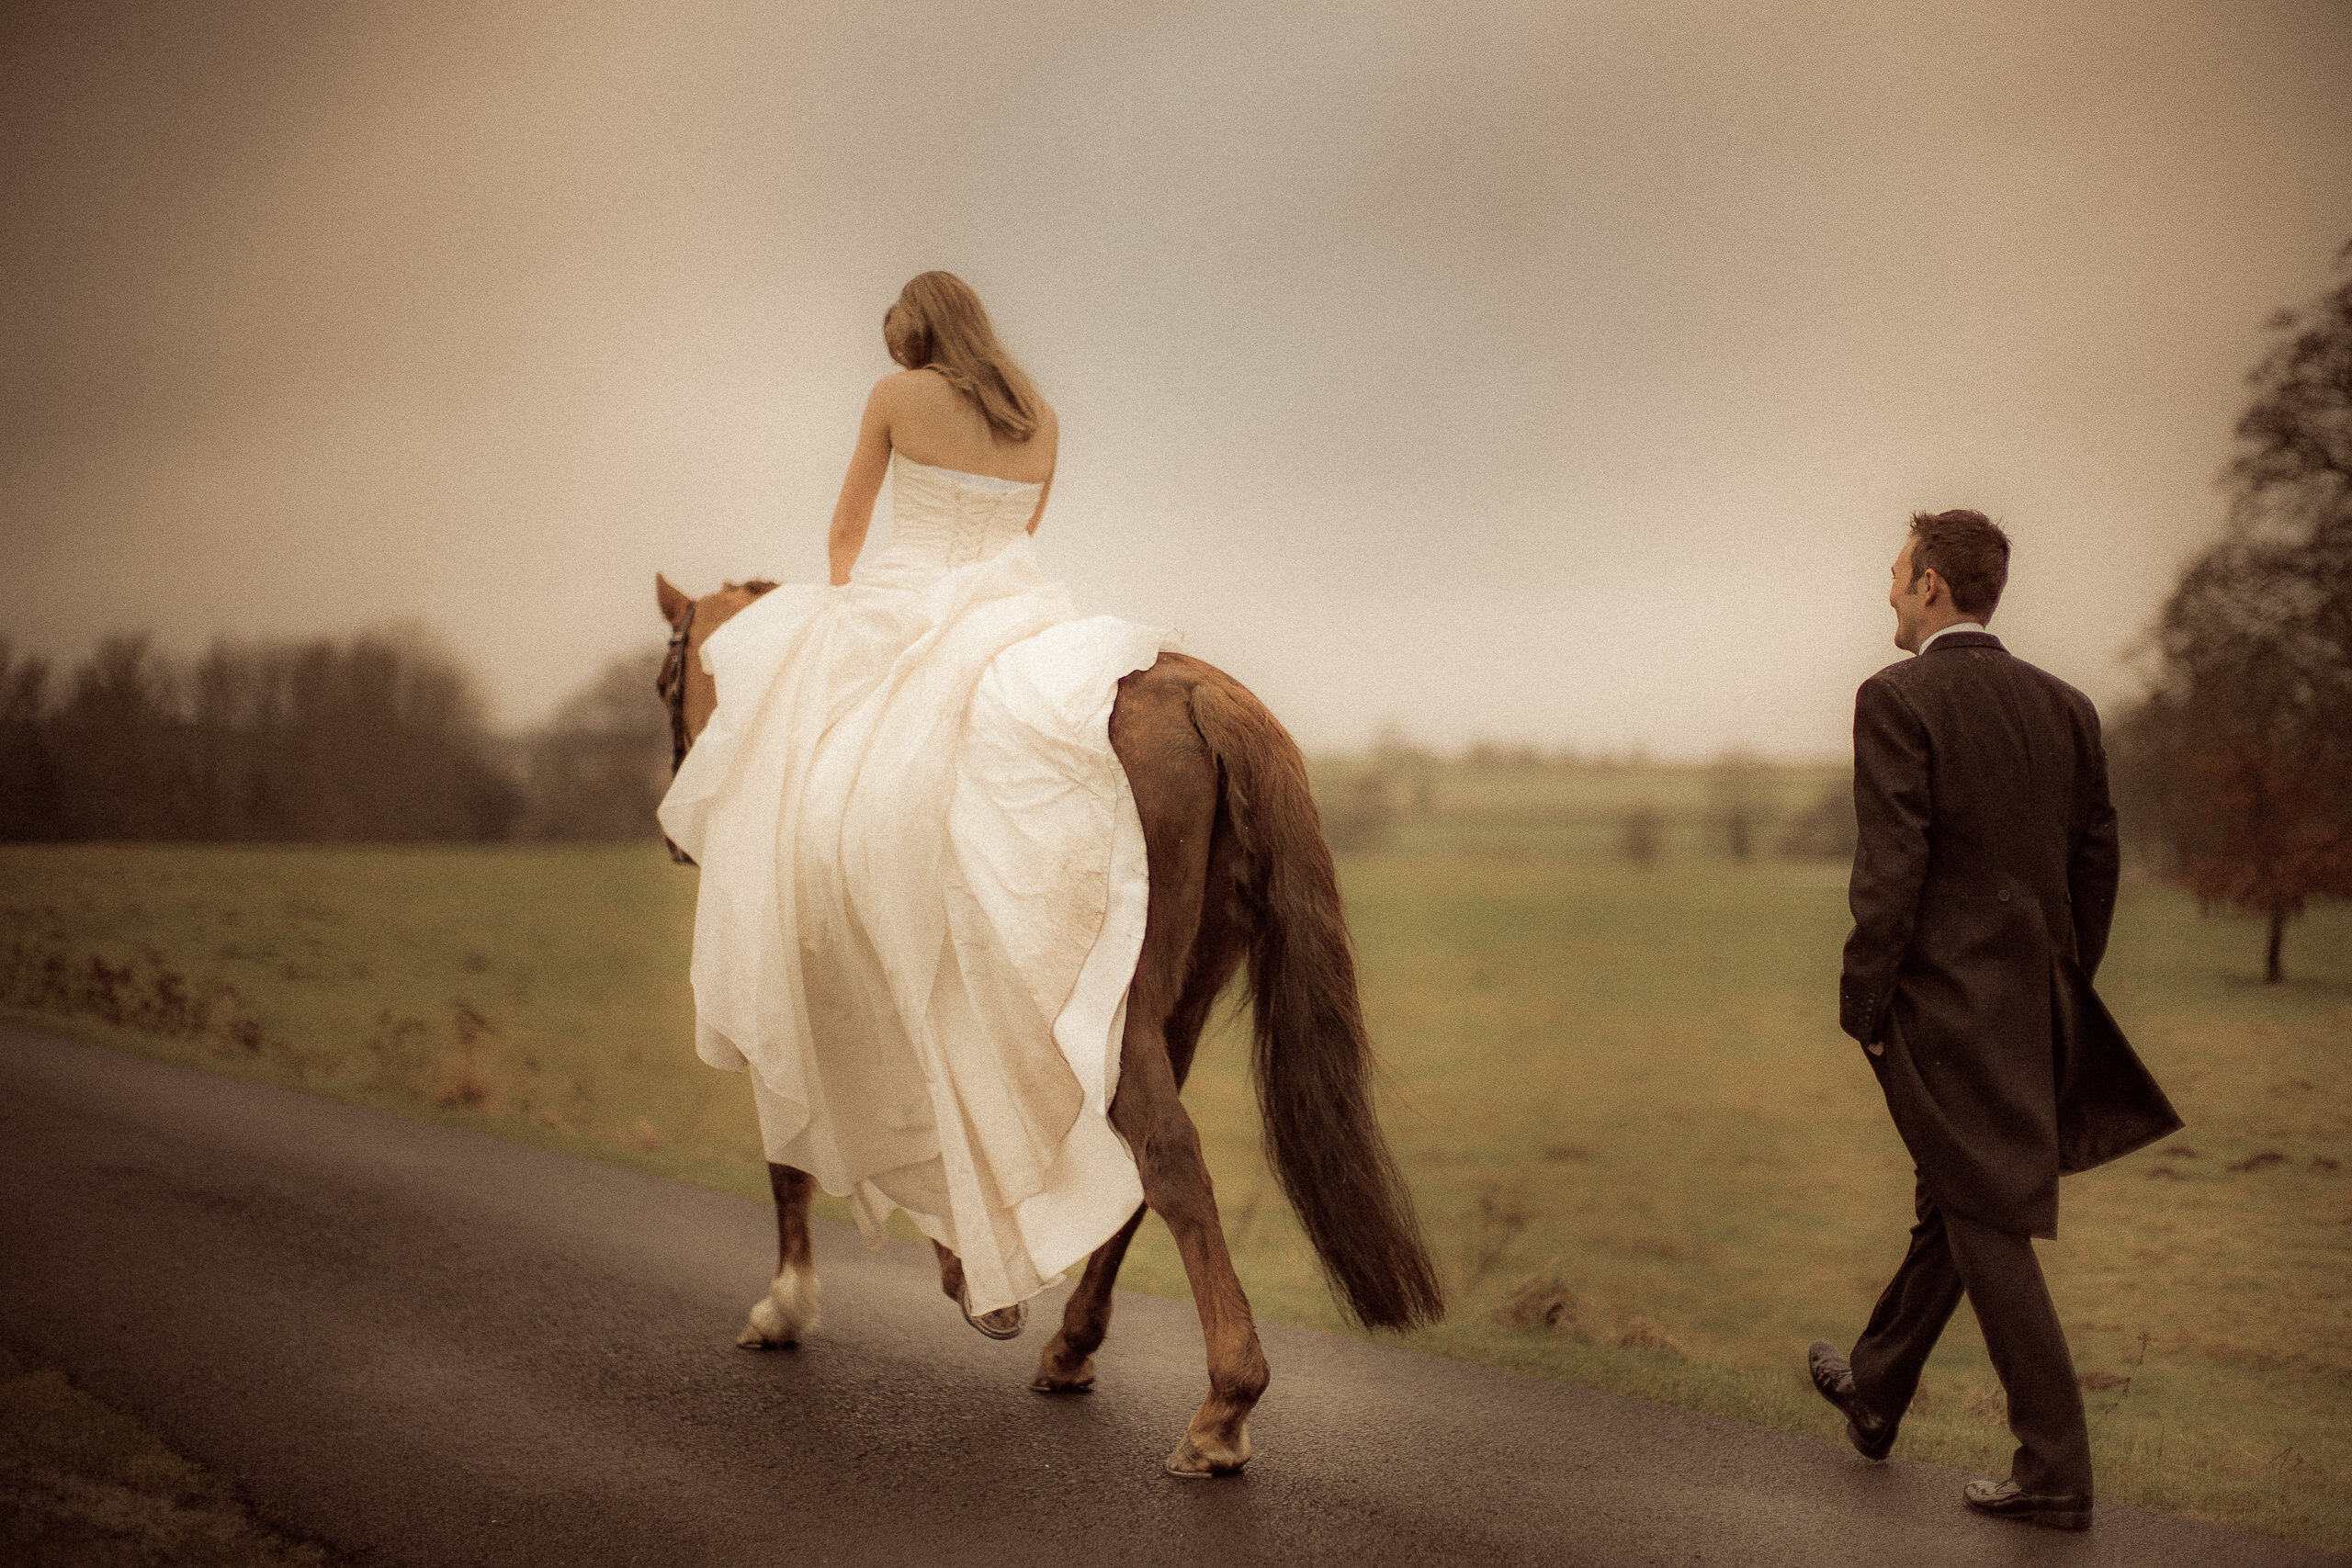 Wedding Gallery About Bride On Horse Reportage By Brett Leica Photographer